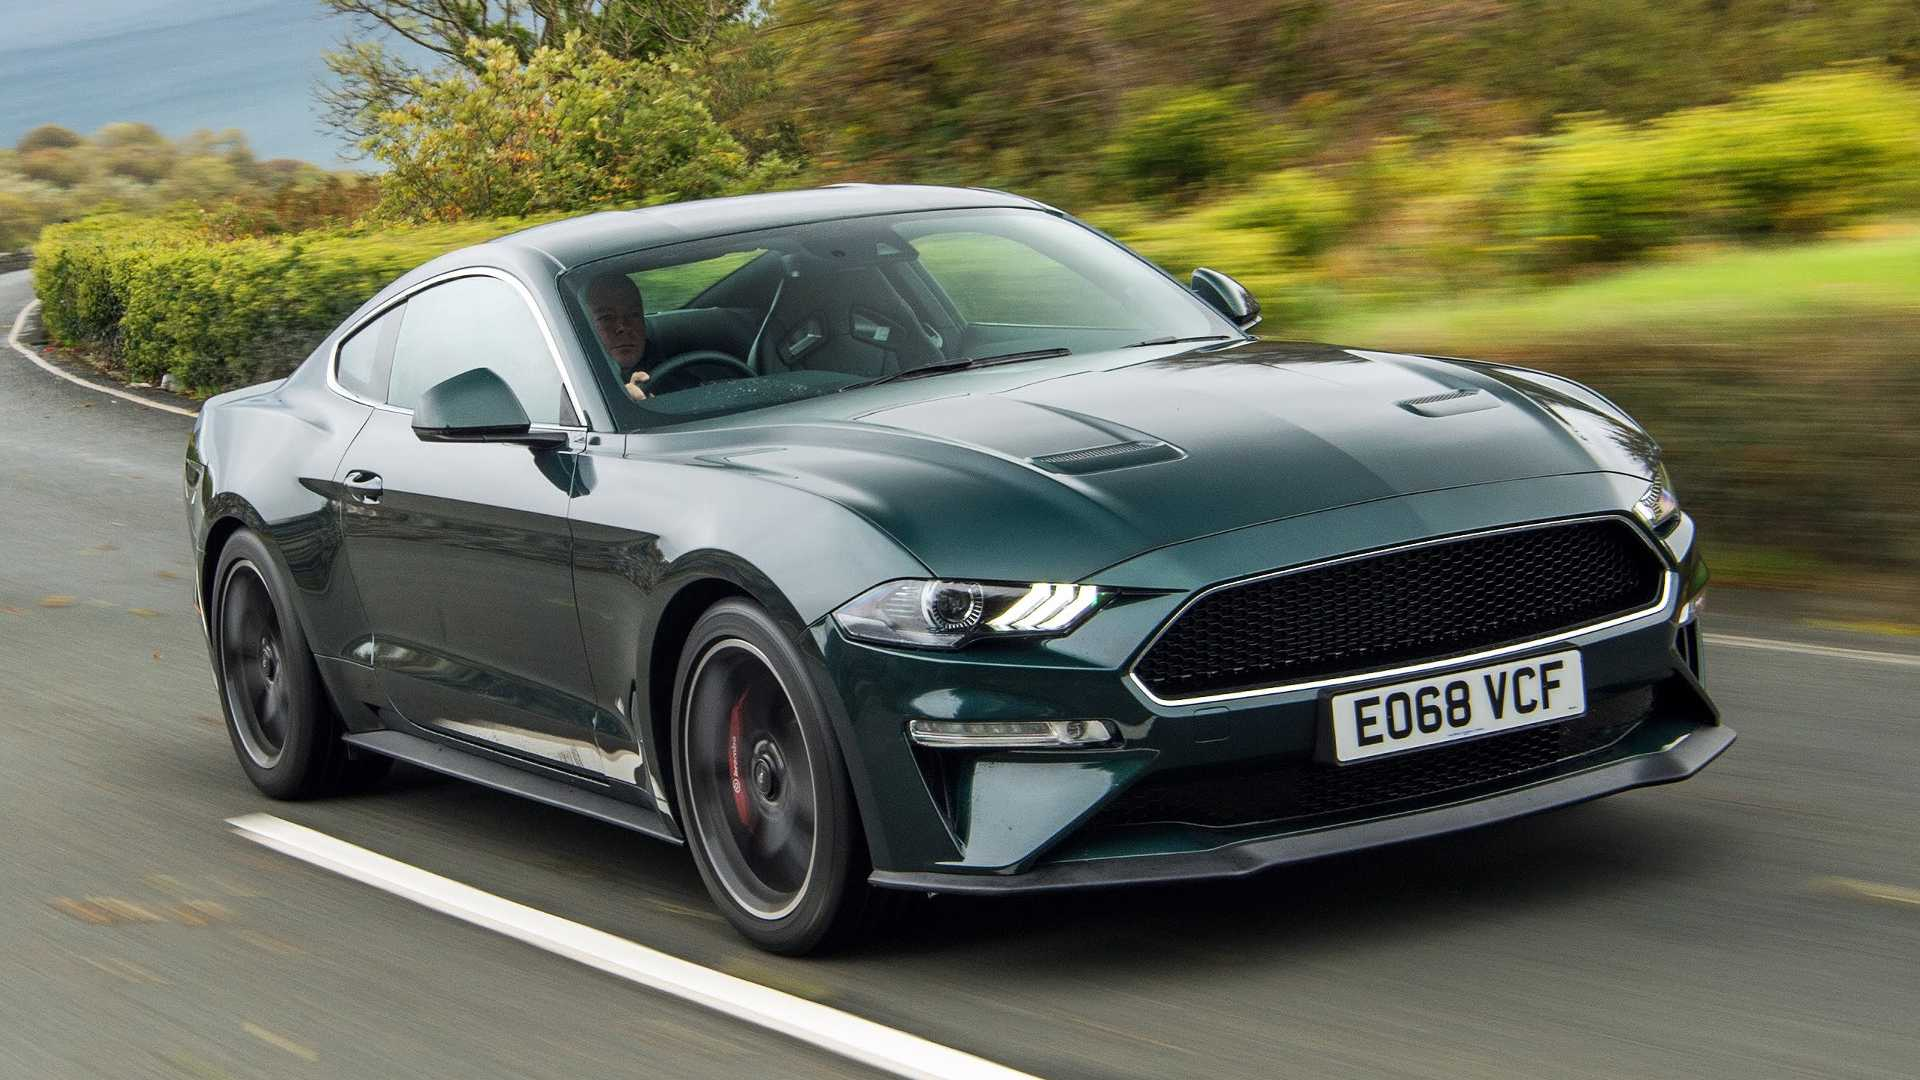 Ford mustang still best selling sports coupe in the world